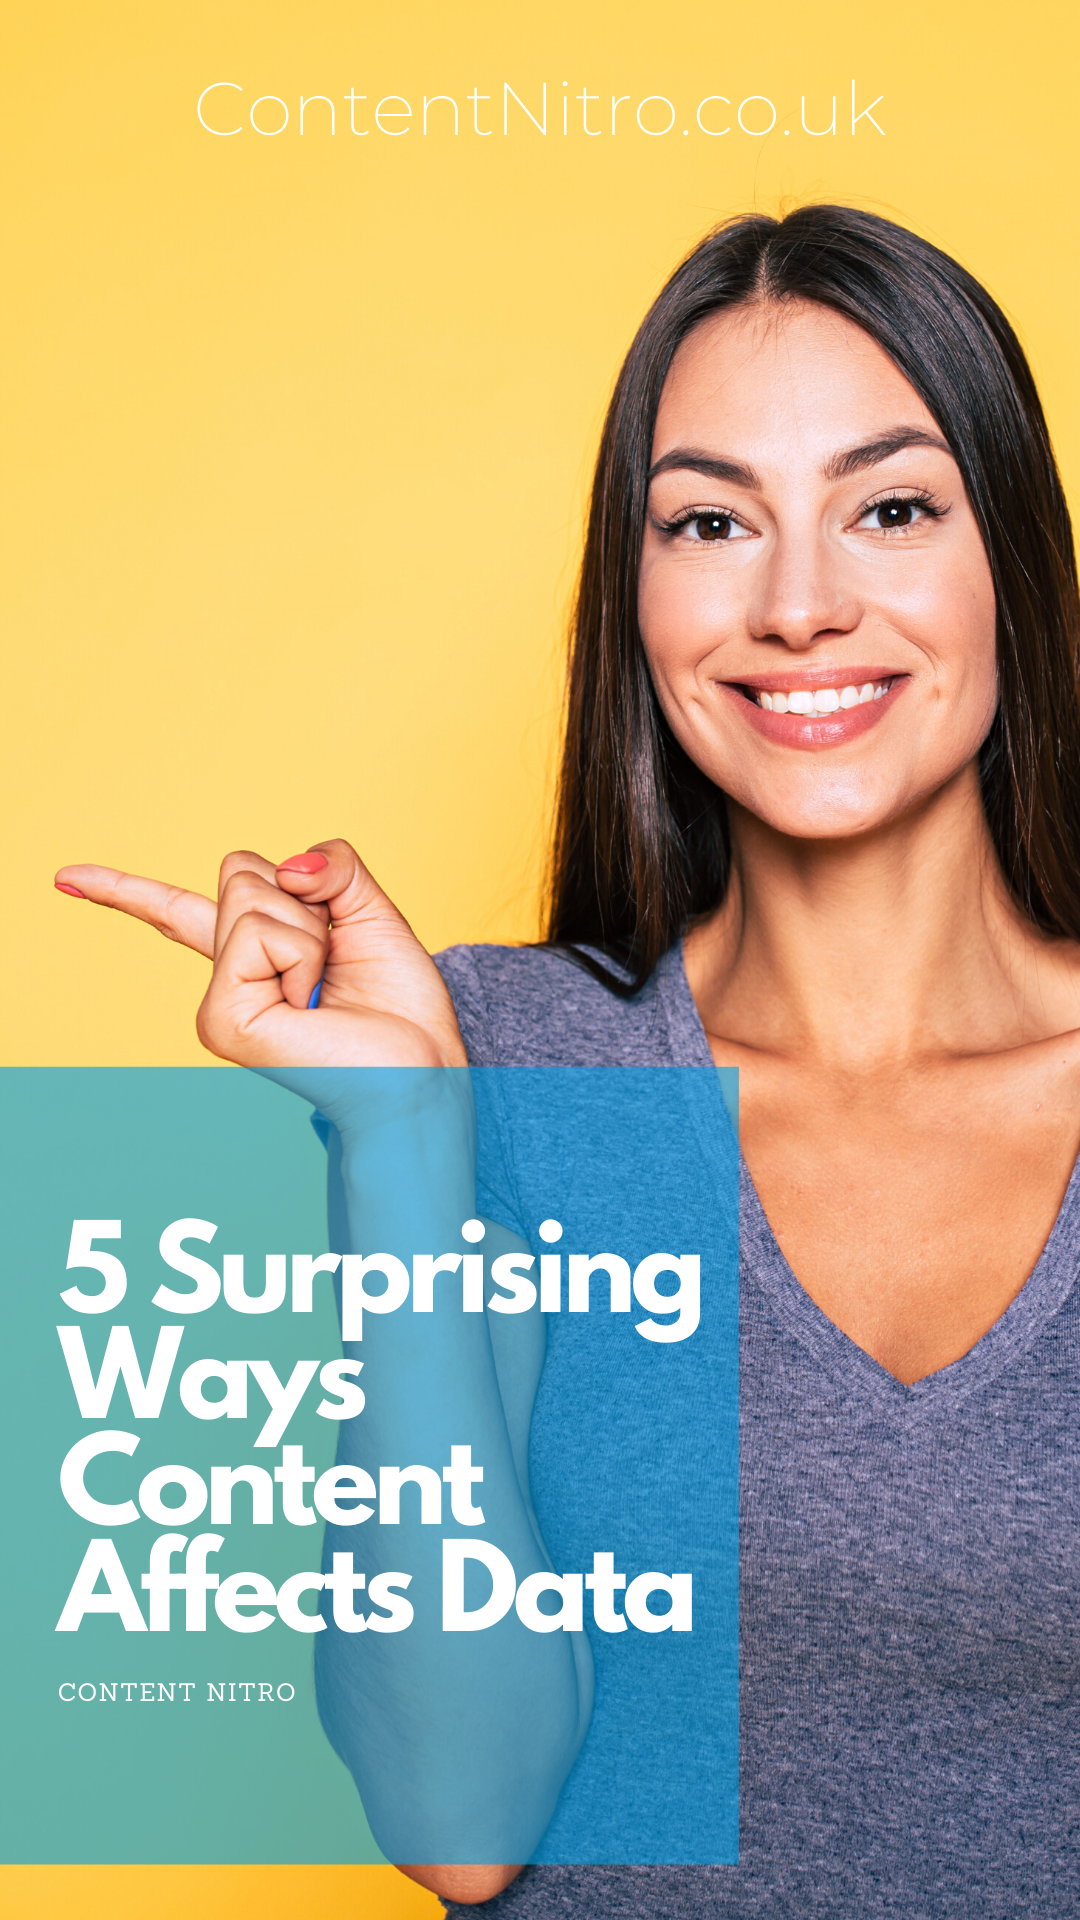 5 Surprising Ways Content Affects Data